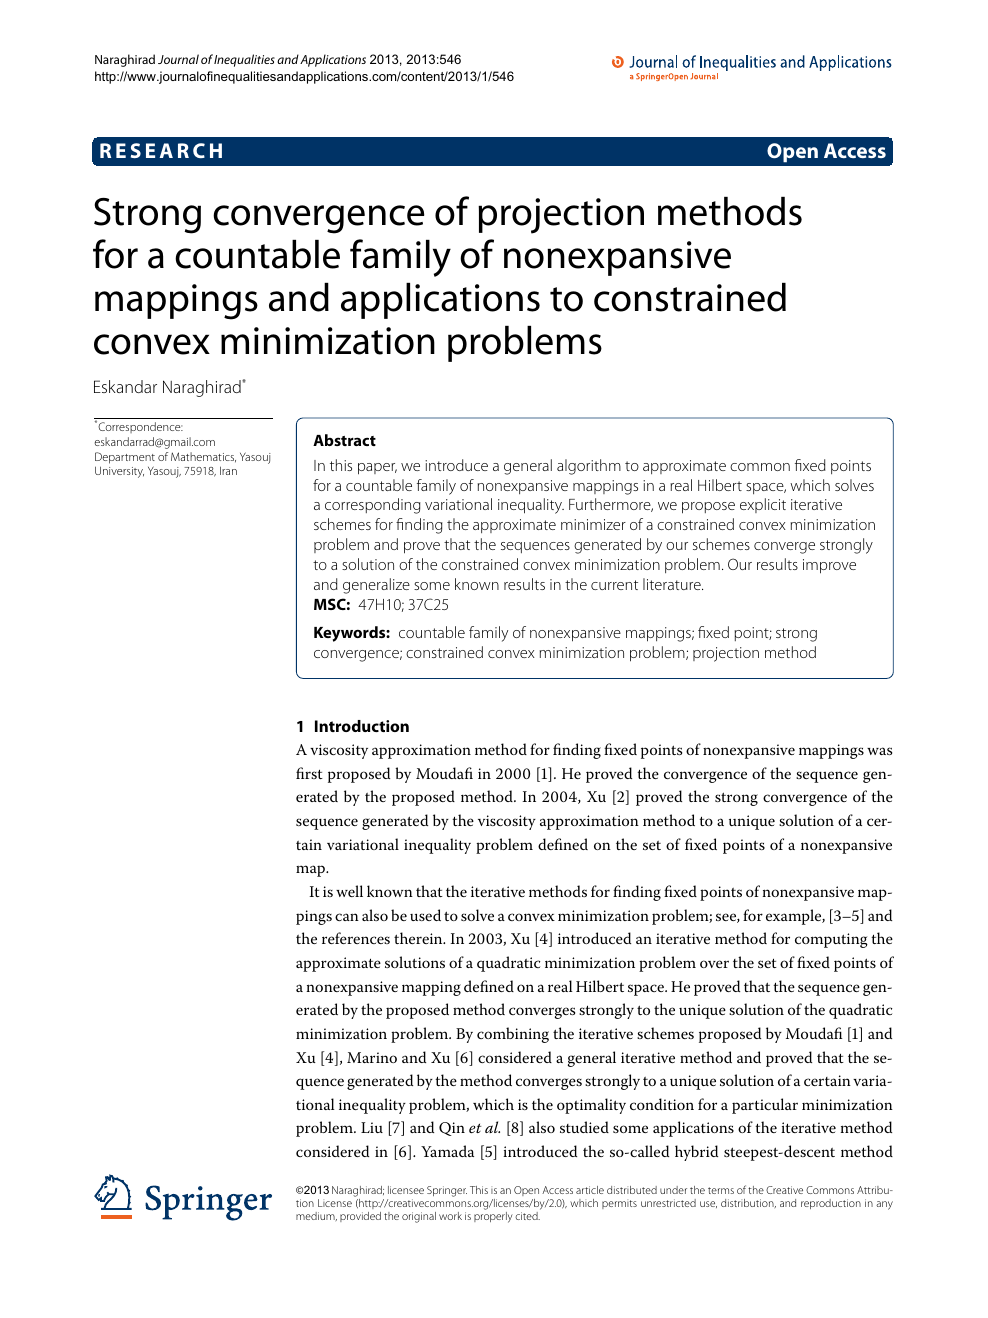 Strong convergence of projection methods for a countable